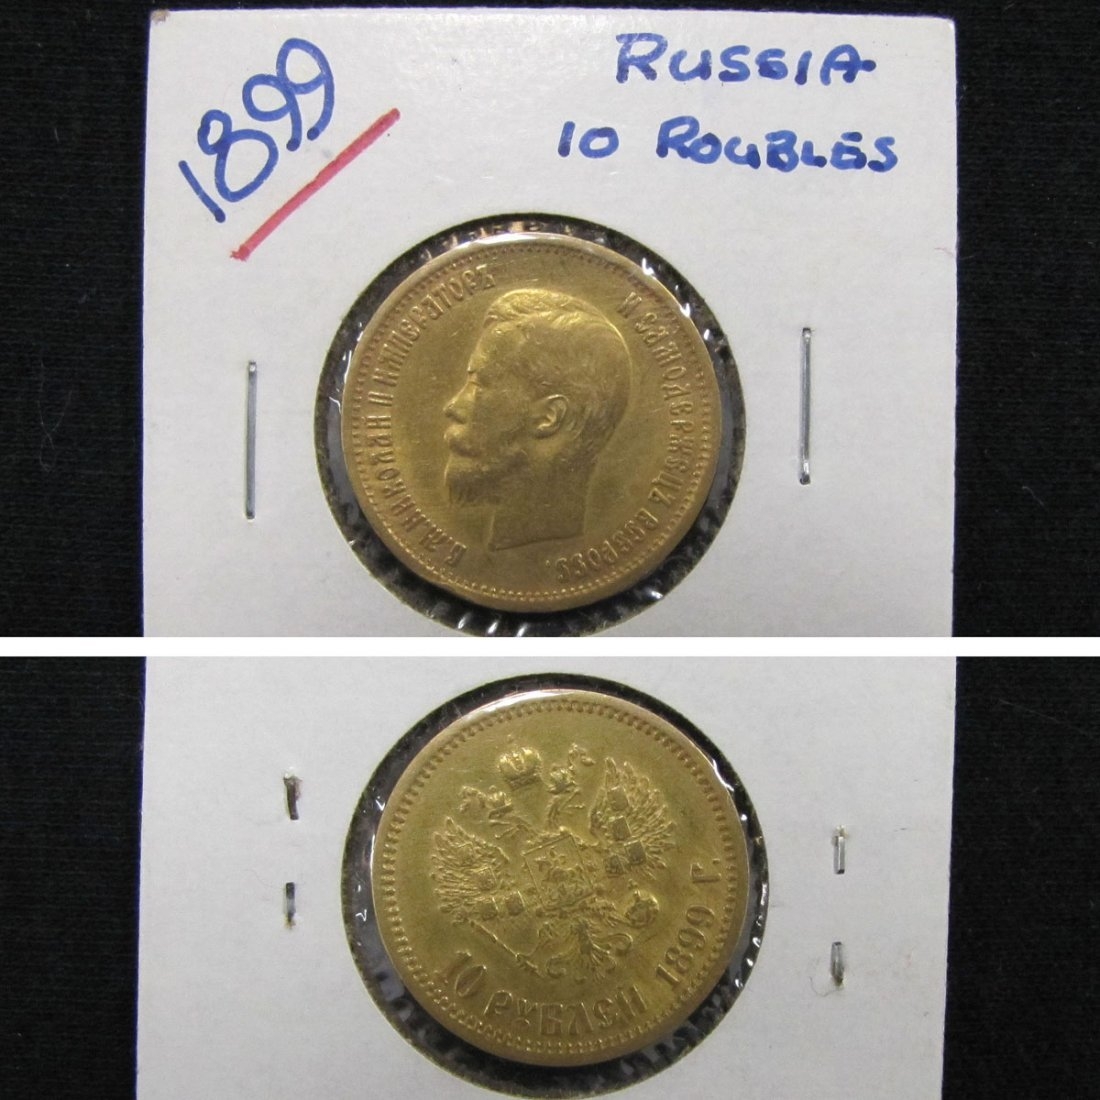 IMPERIAL RUSSIAN NICHOLAS II GOLD 10 RUBLES COIN